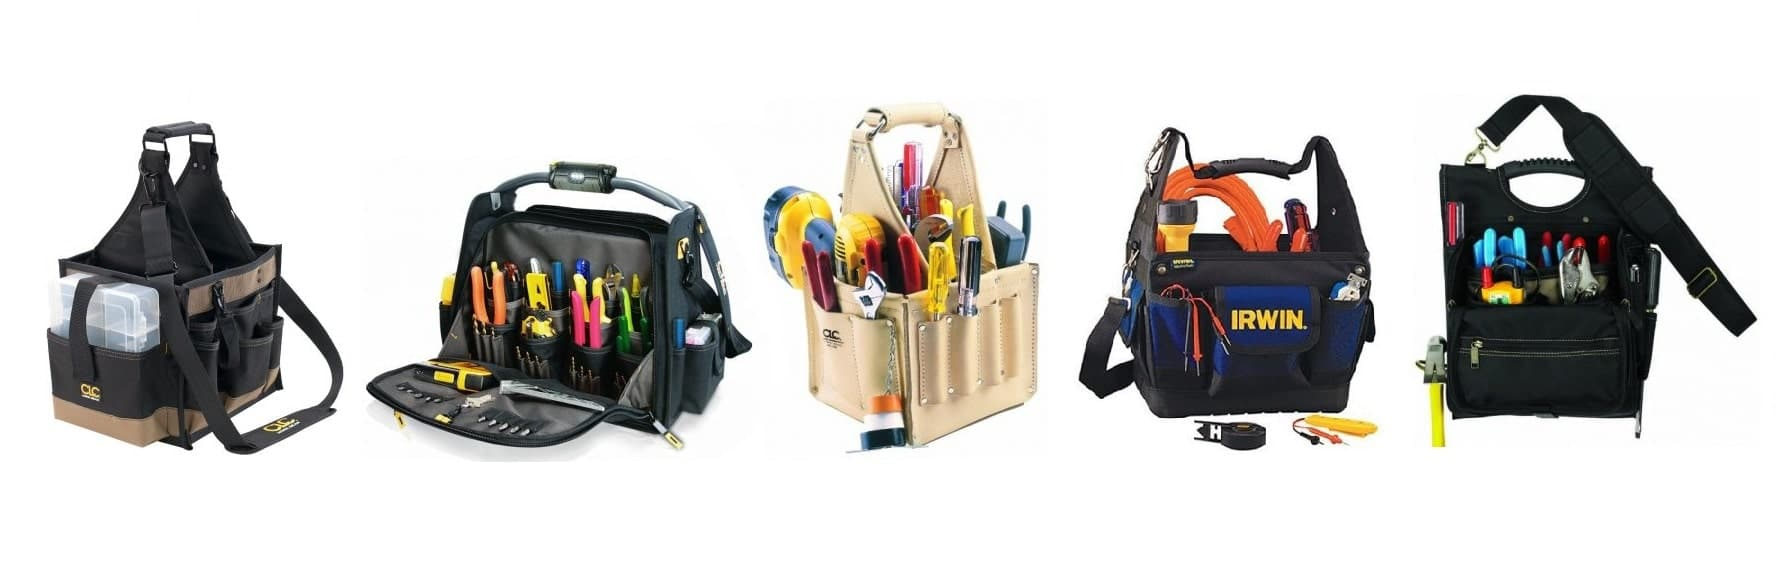 10 Best Electrician Tool Bags [Updated for 2020]